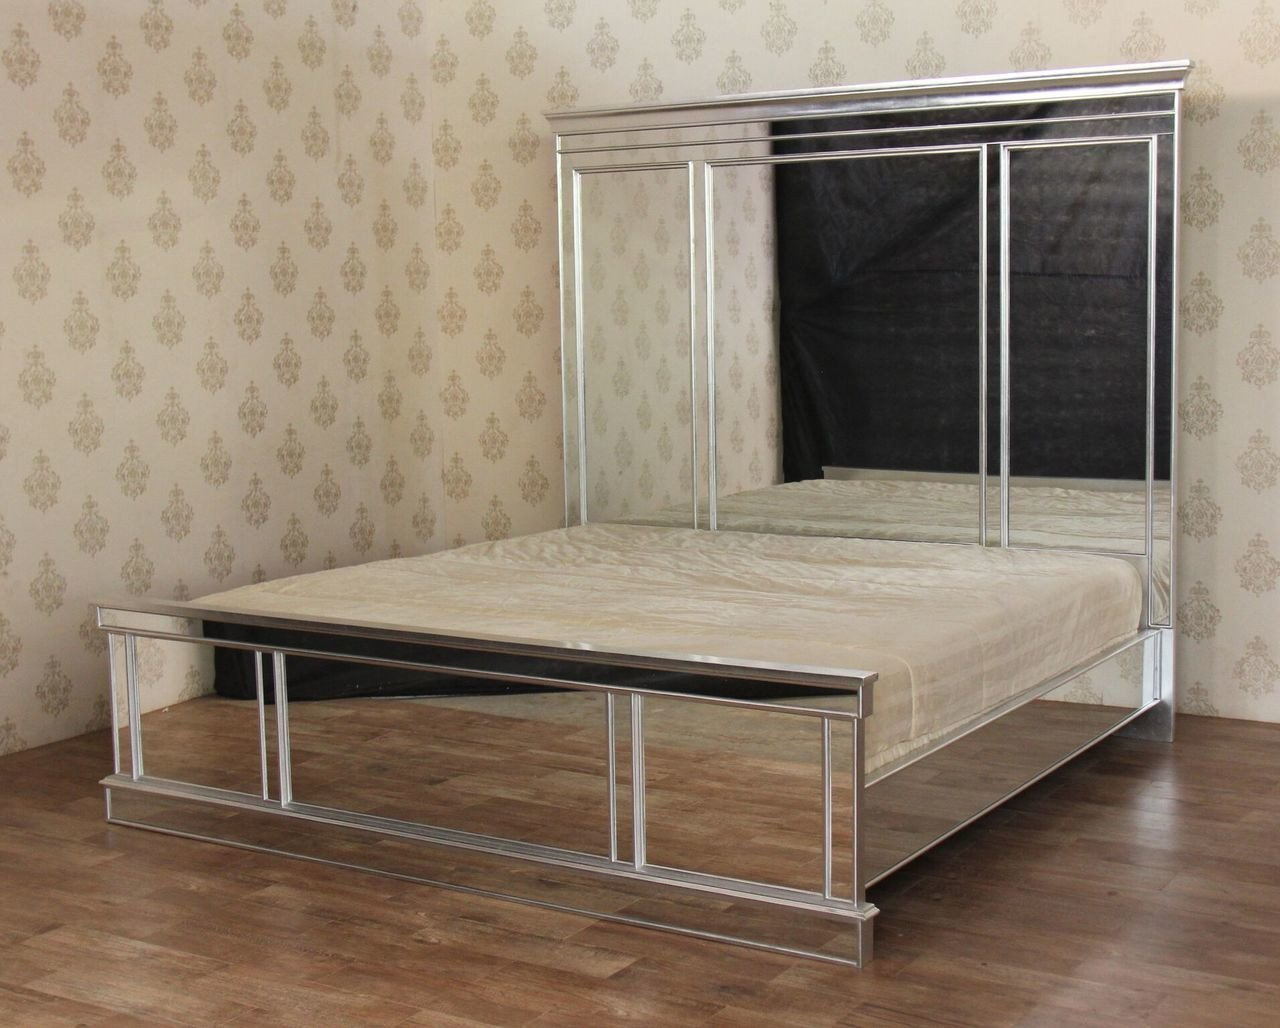 Mirrored Queen Bedroom Set New Mirrored Silver Leaf Oversized E King Mansion Panel Bed